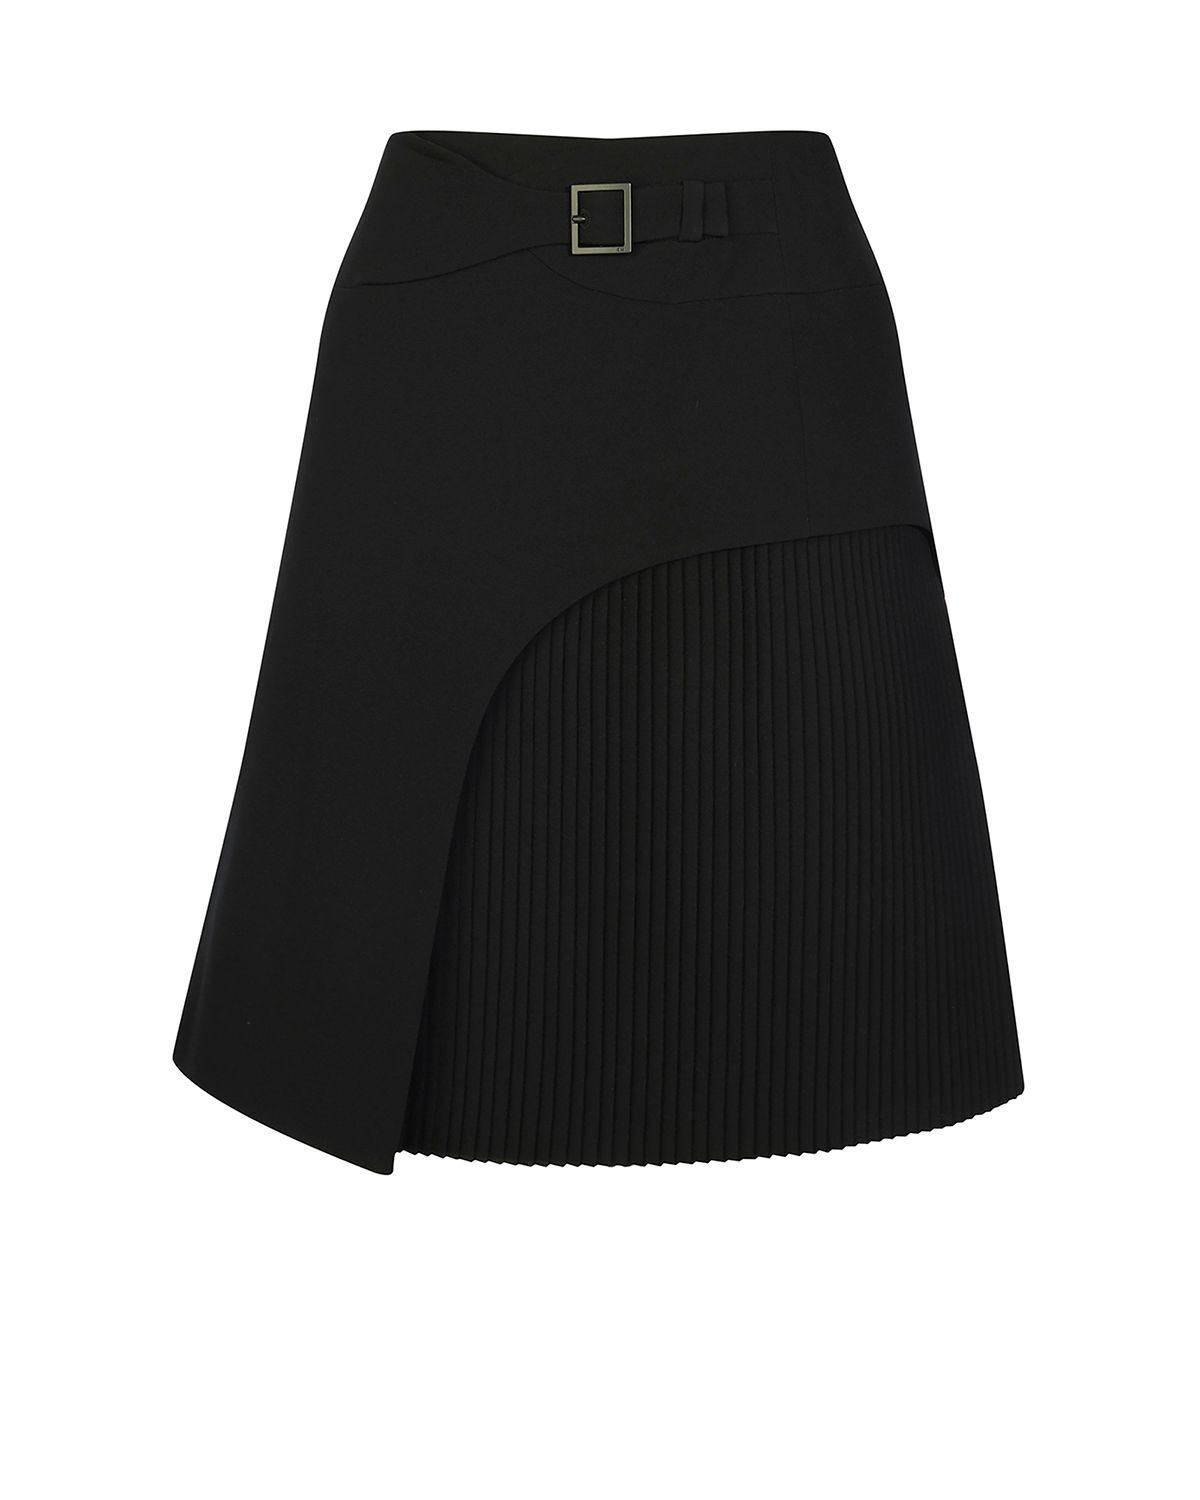 Karen Millen Pleated Kilt-Inspired Skirt, Black